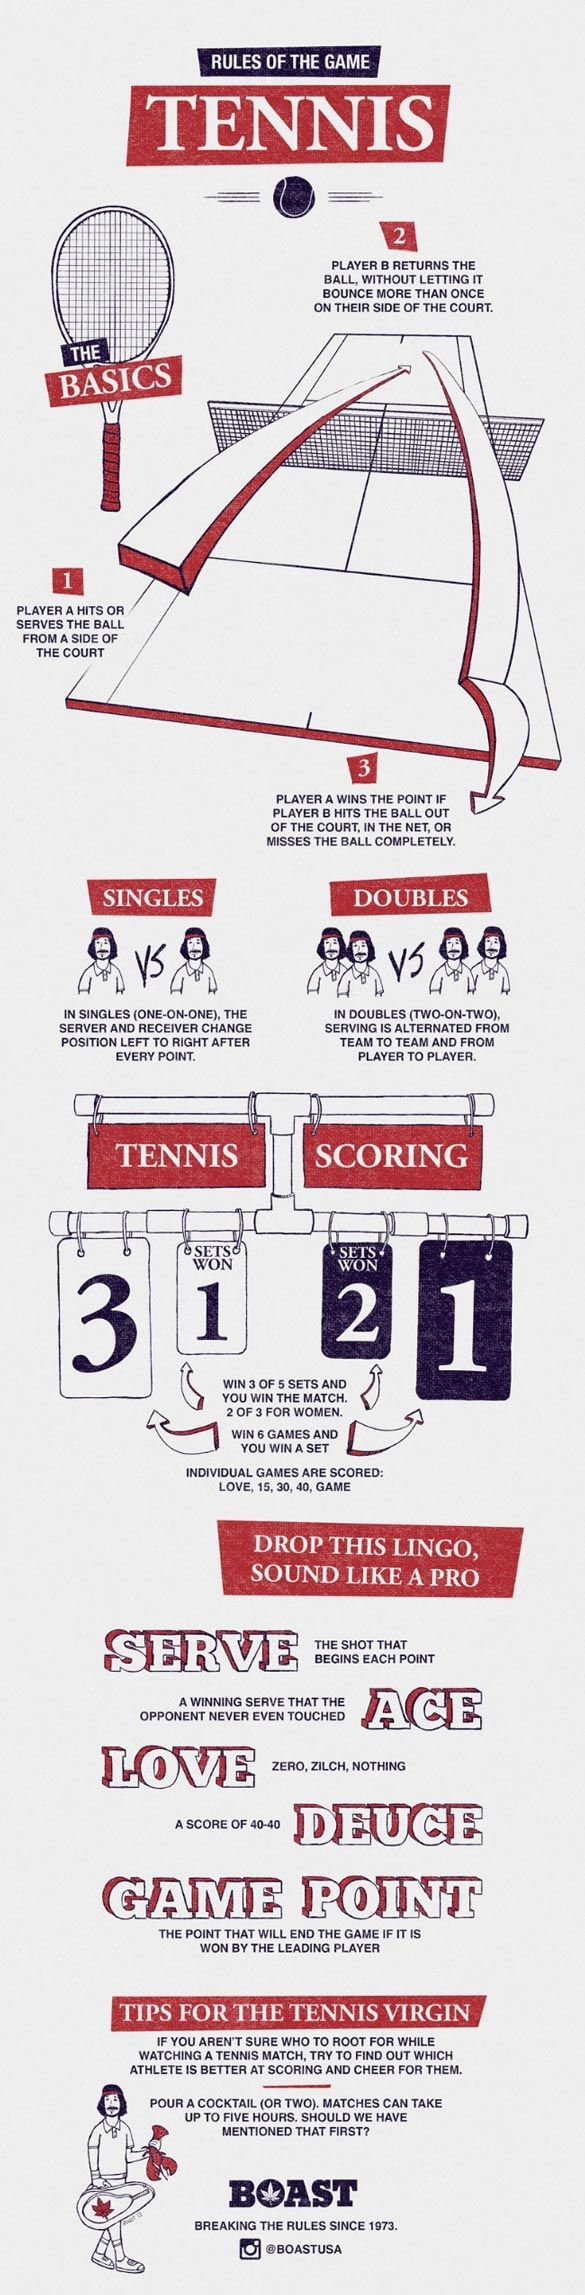 Want to try tennis but are totally confused about the sport? Here's your cheat sheet! | Fit Bottomed Girls